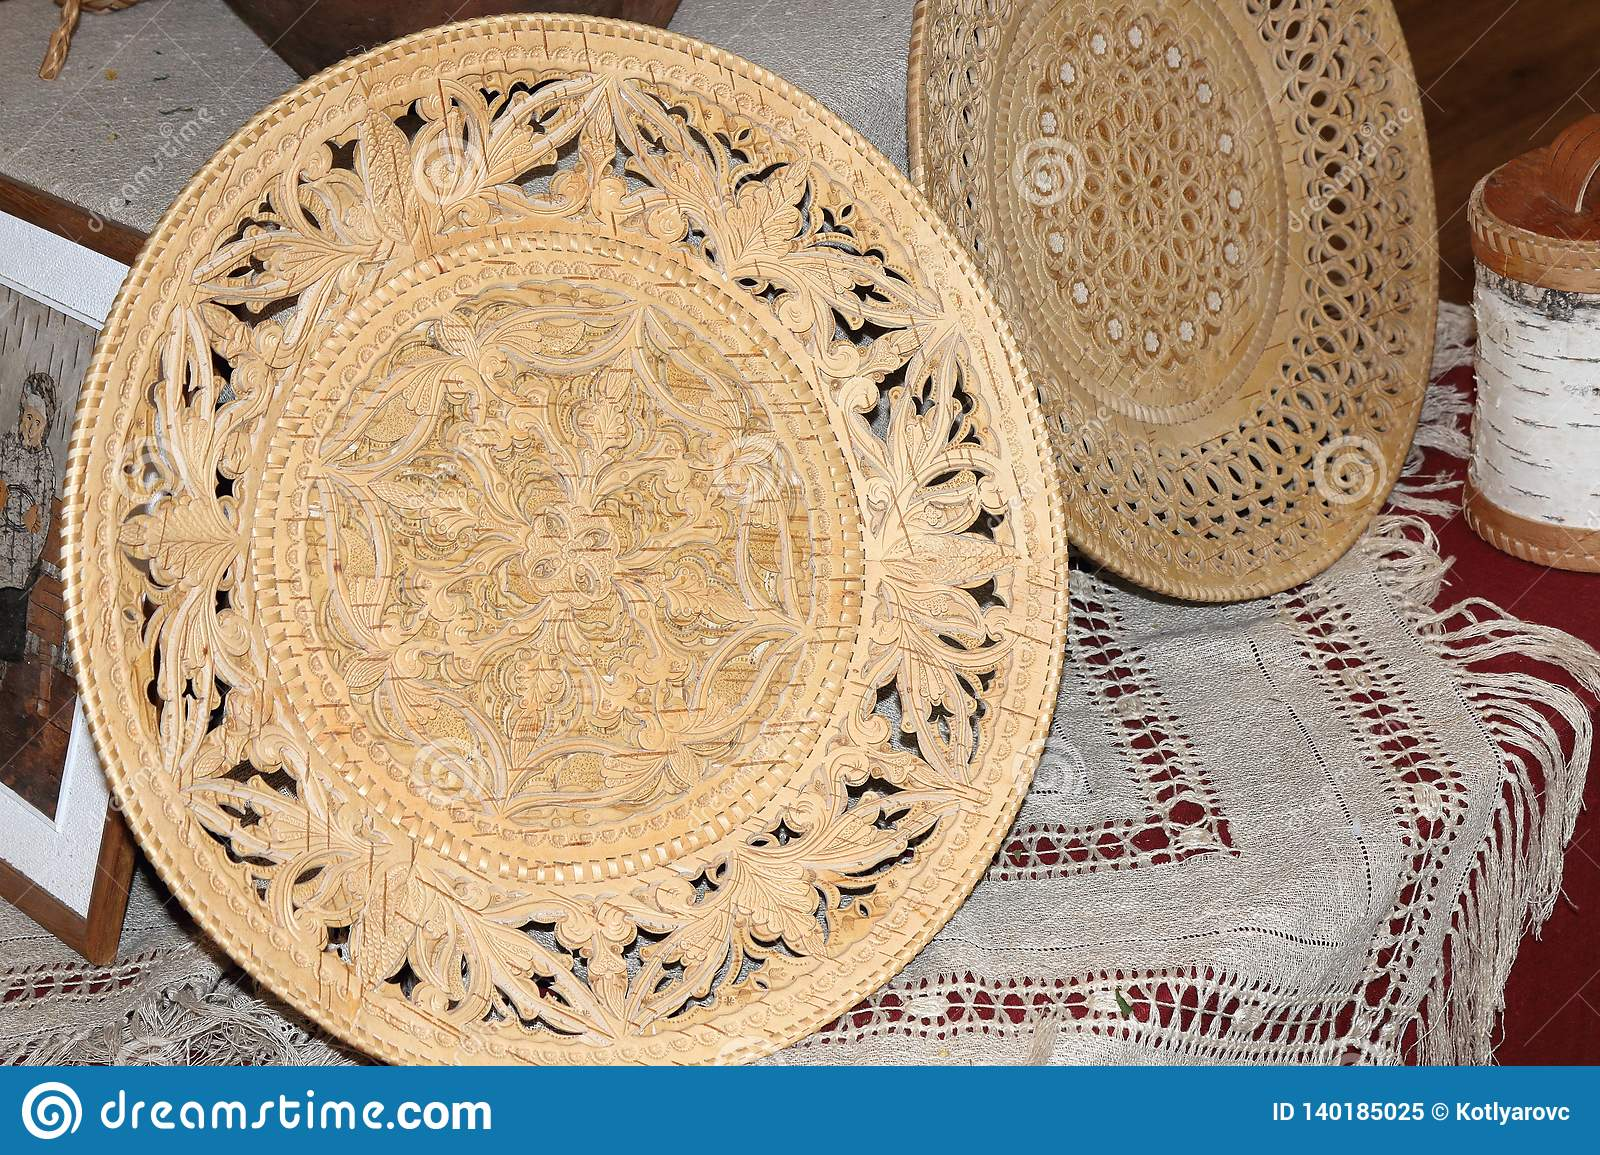 Birch bark carved plates for bread.